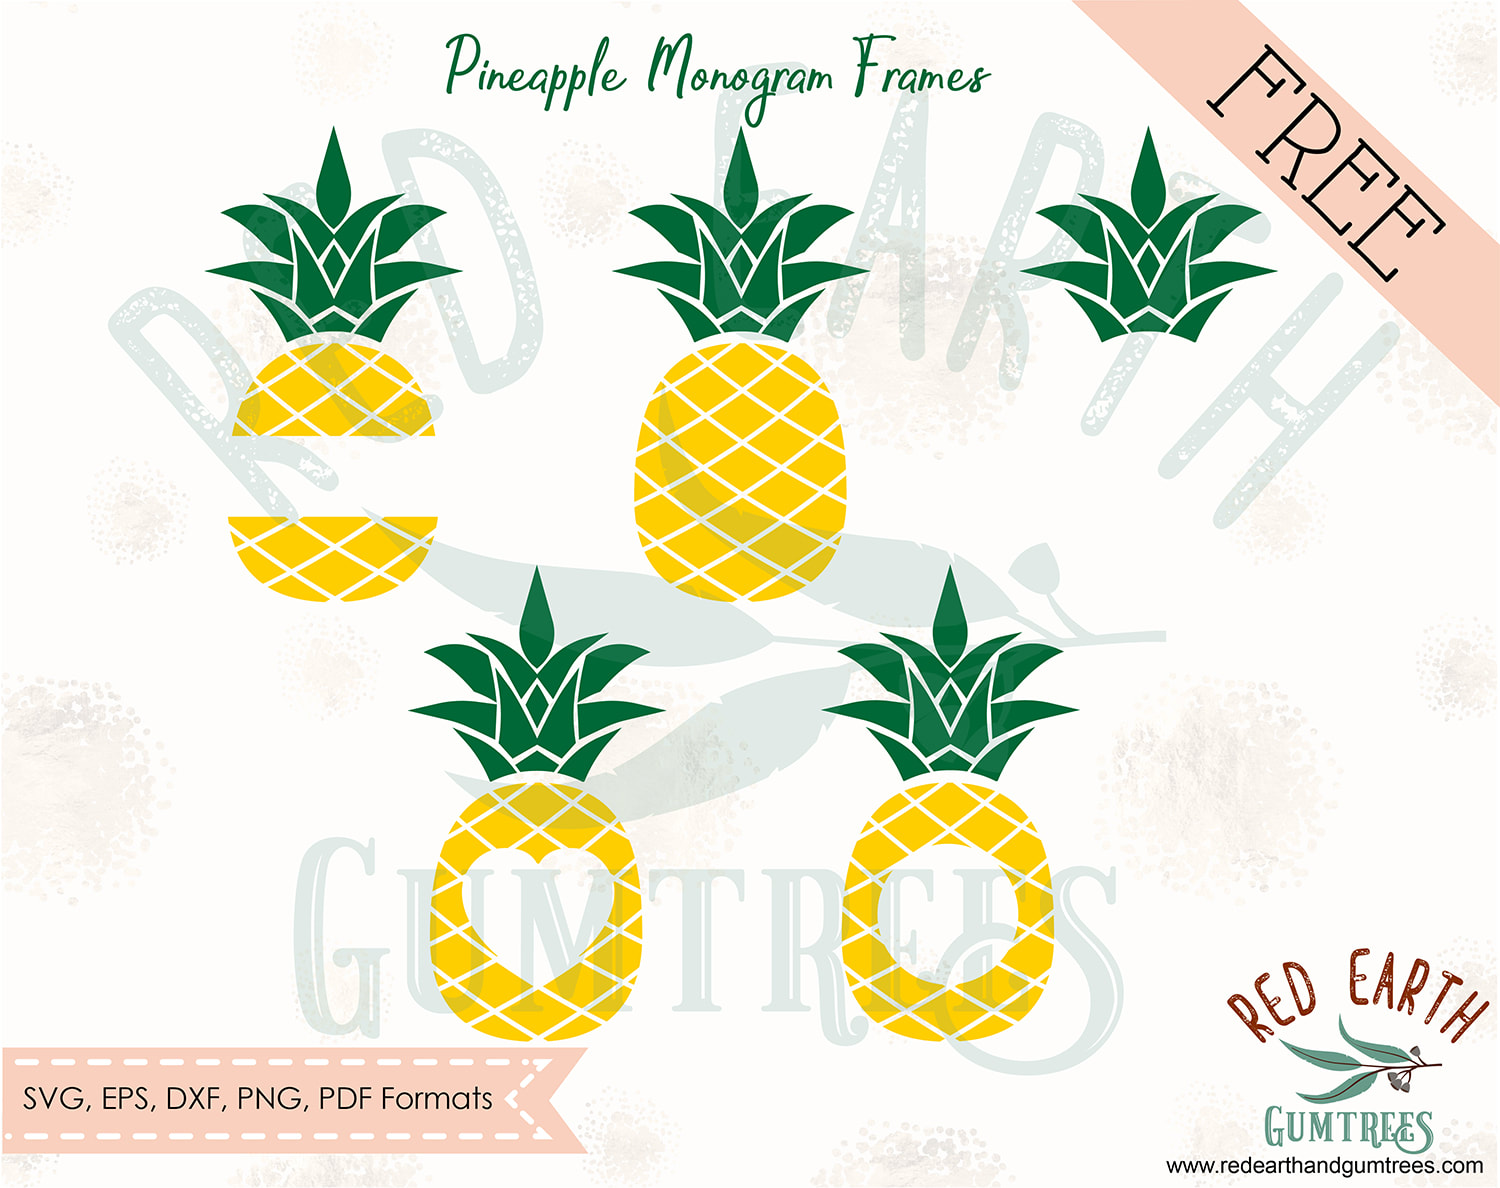 pineapple monogram svg free #271, Download drawings